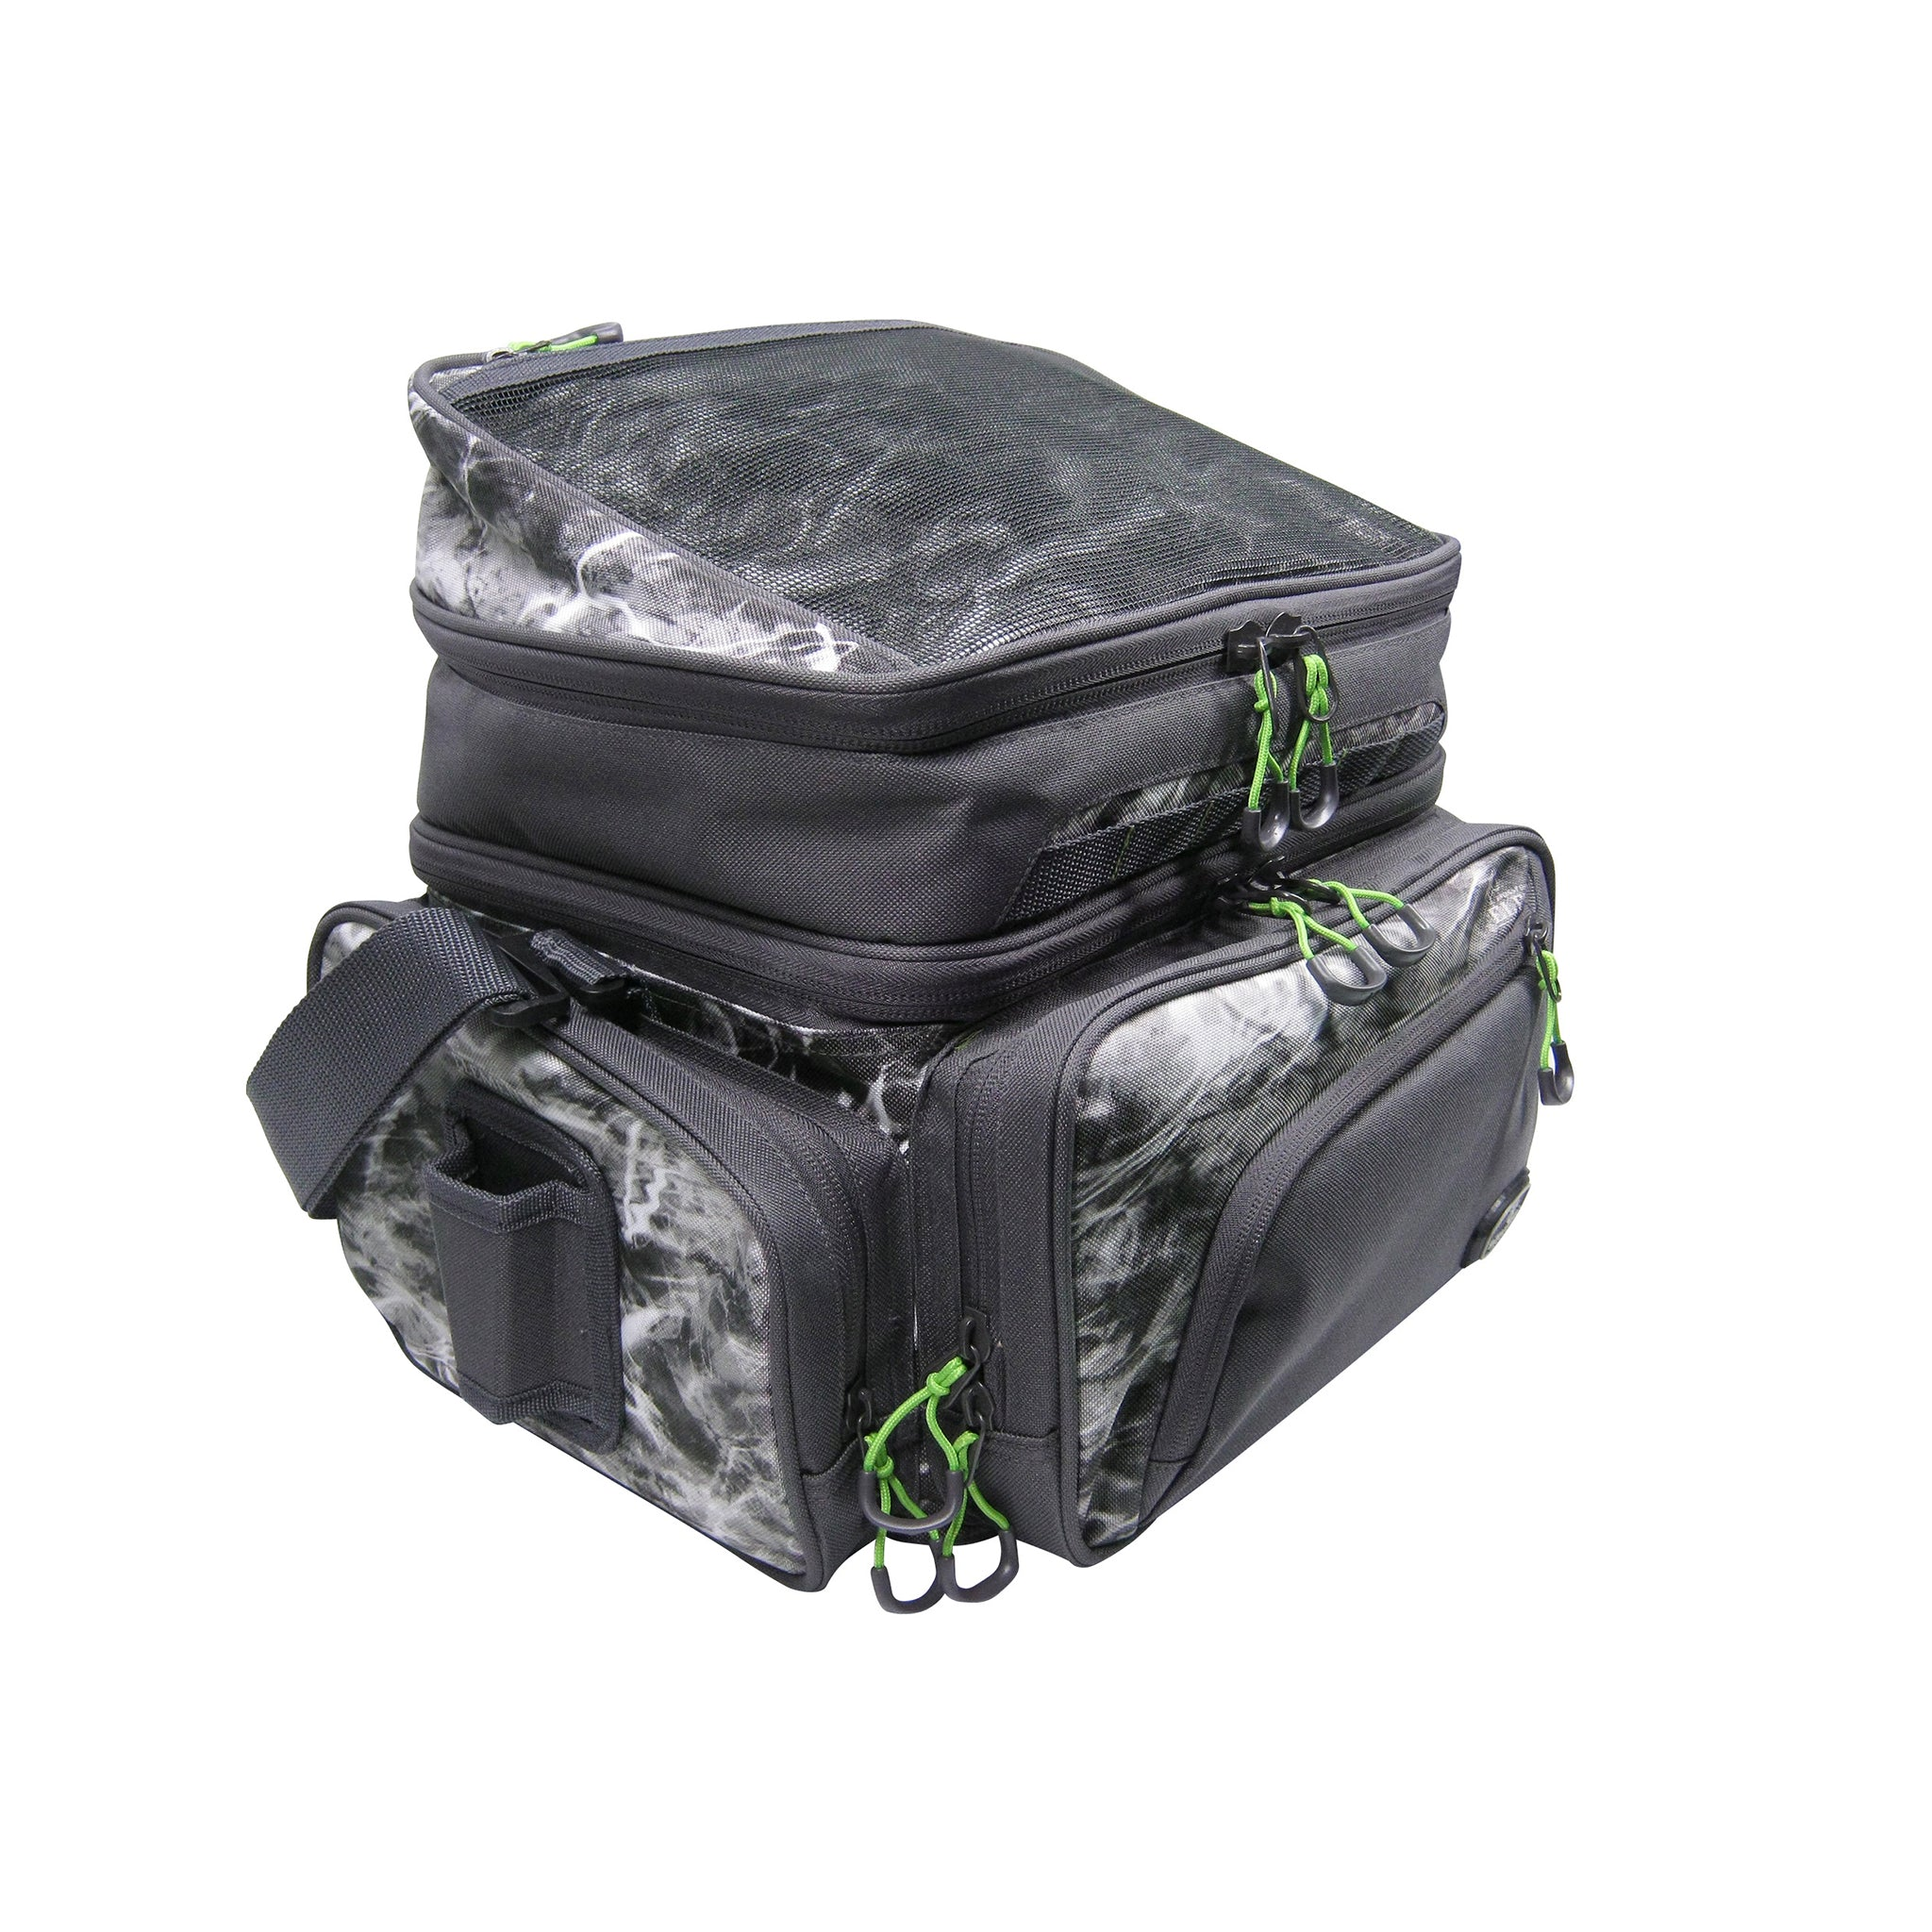 Large Mouth Pro Performance Mossy Oak Tackle Bag